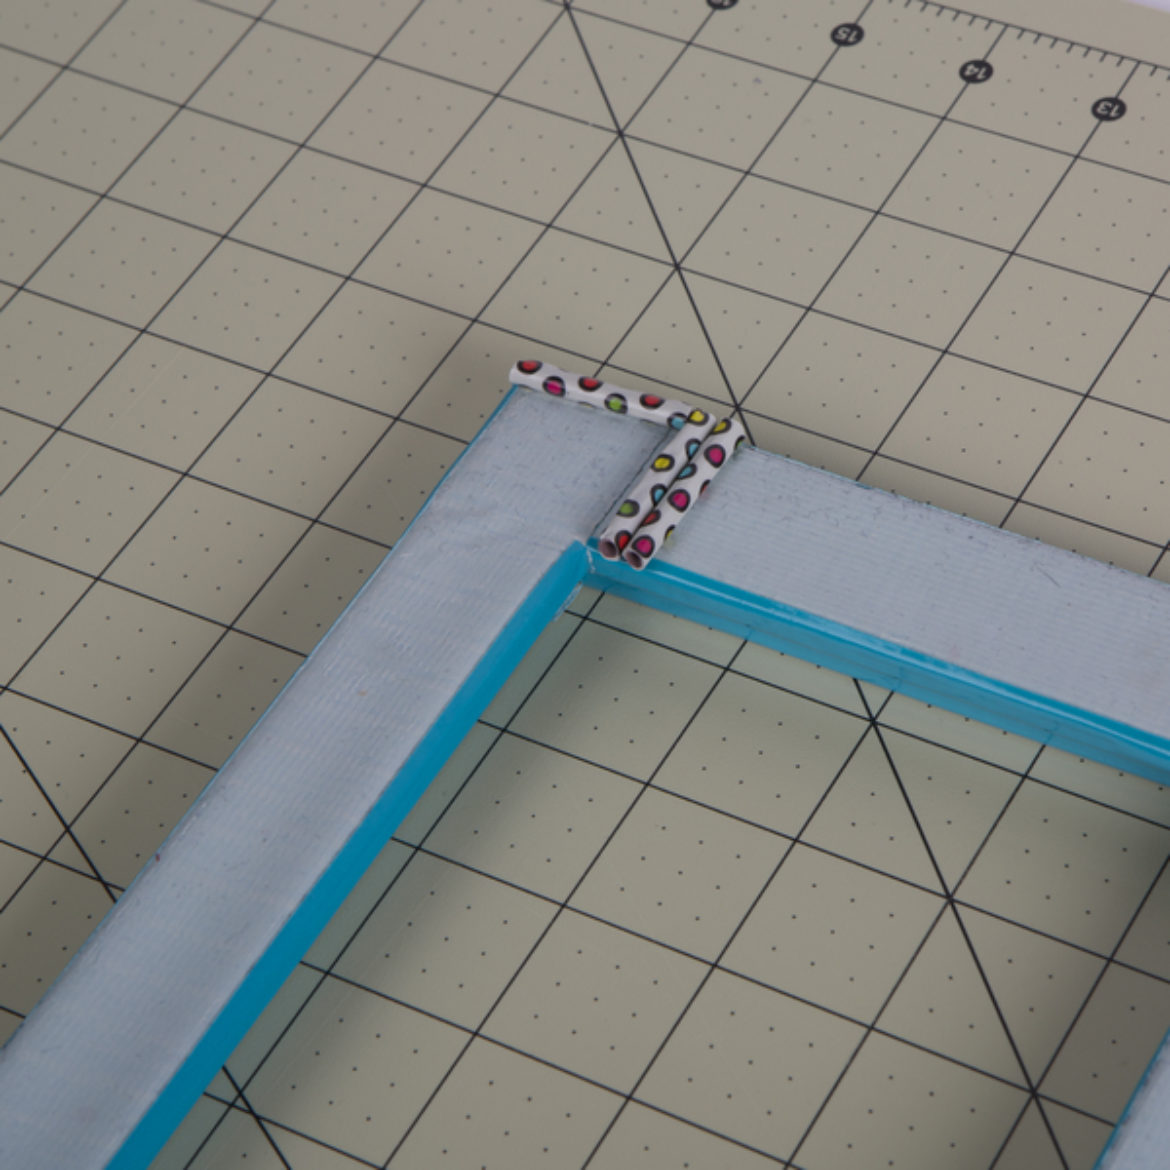 Straw pieces made in step 2 placed on the outward facing tape secured in the previous step